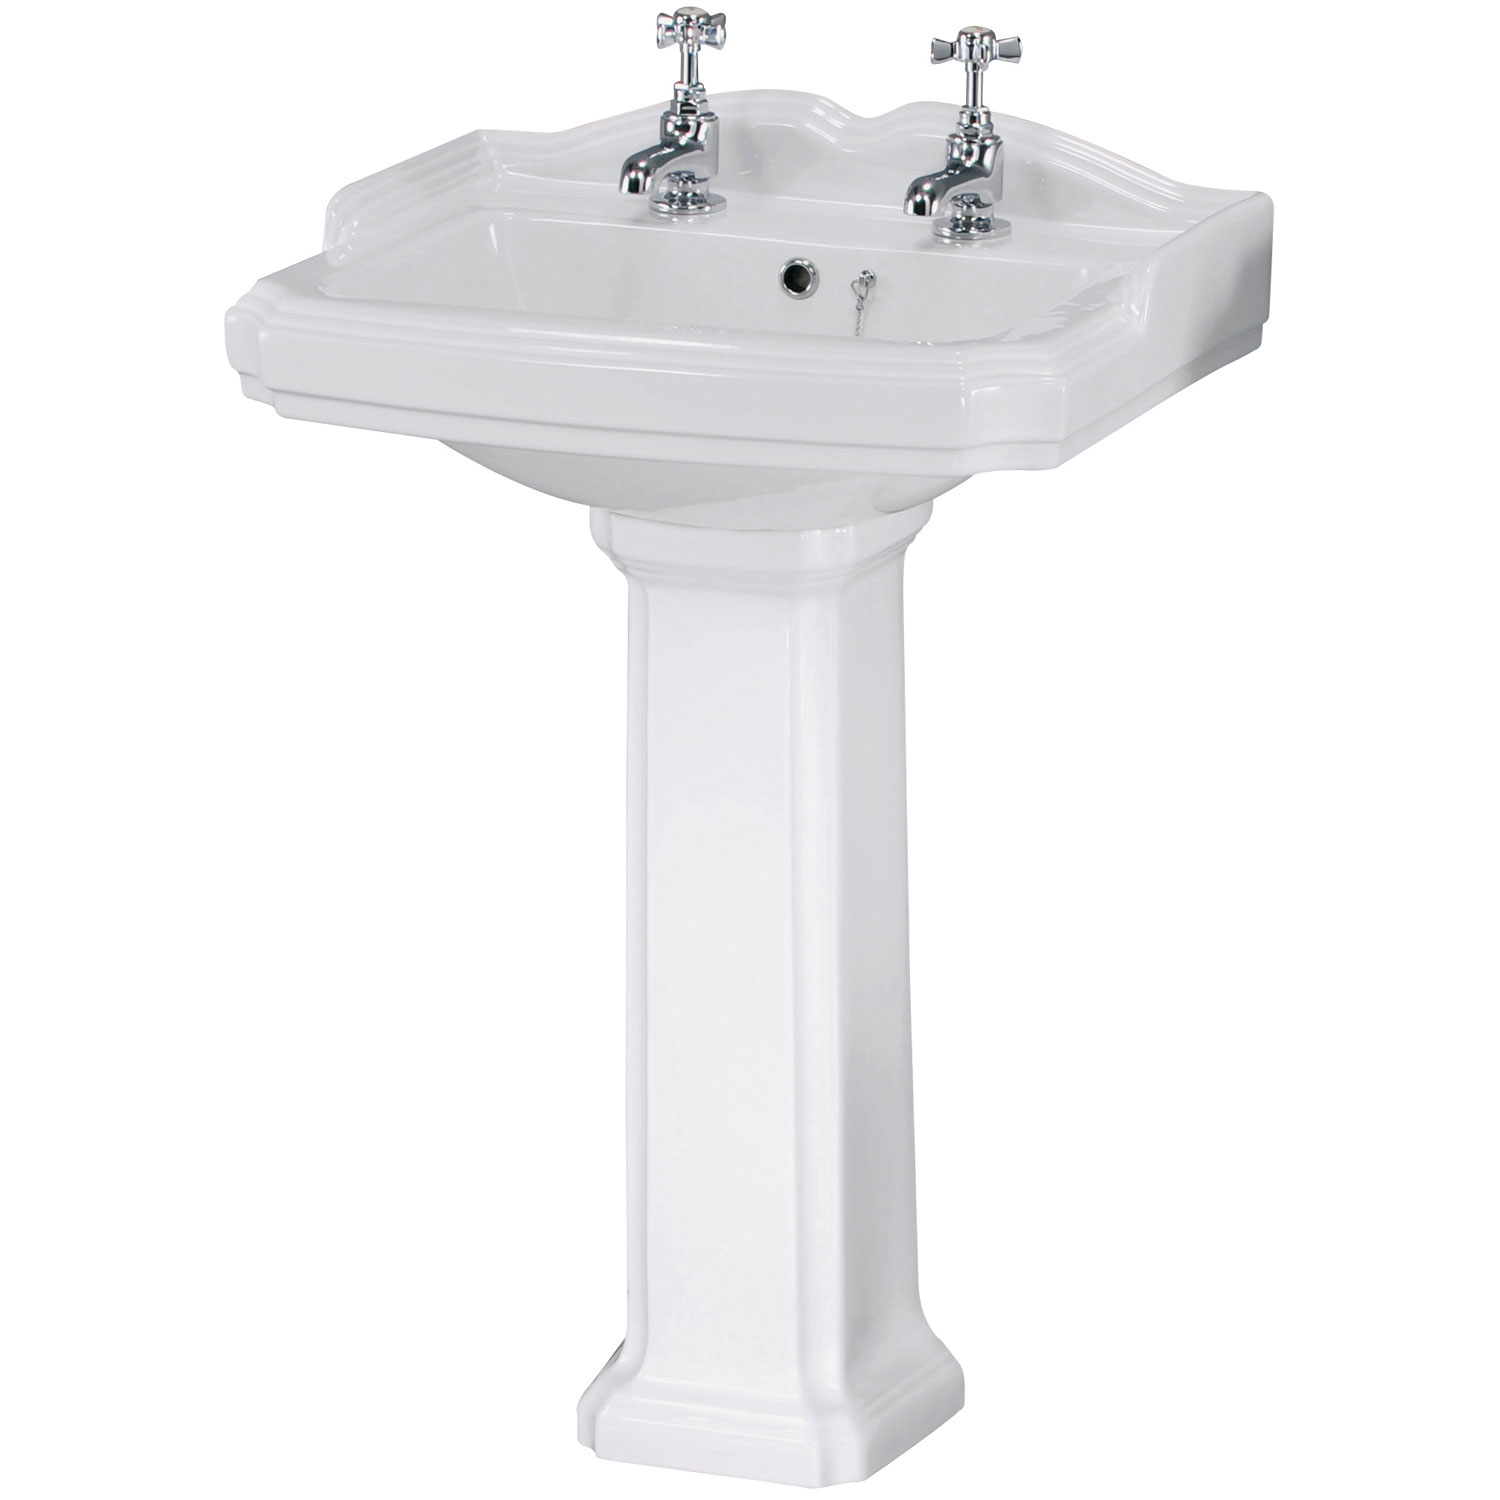 Premier Legend Basin and Full Pedestal 580mm Wide - 2 Tap Hole-1